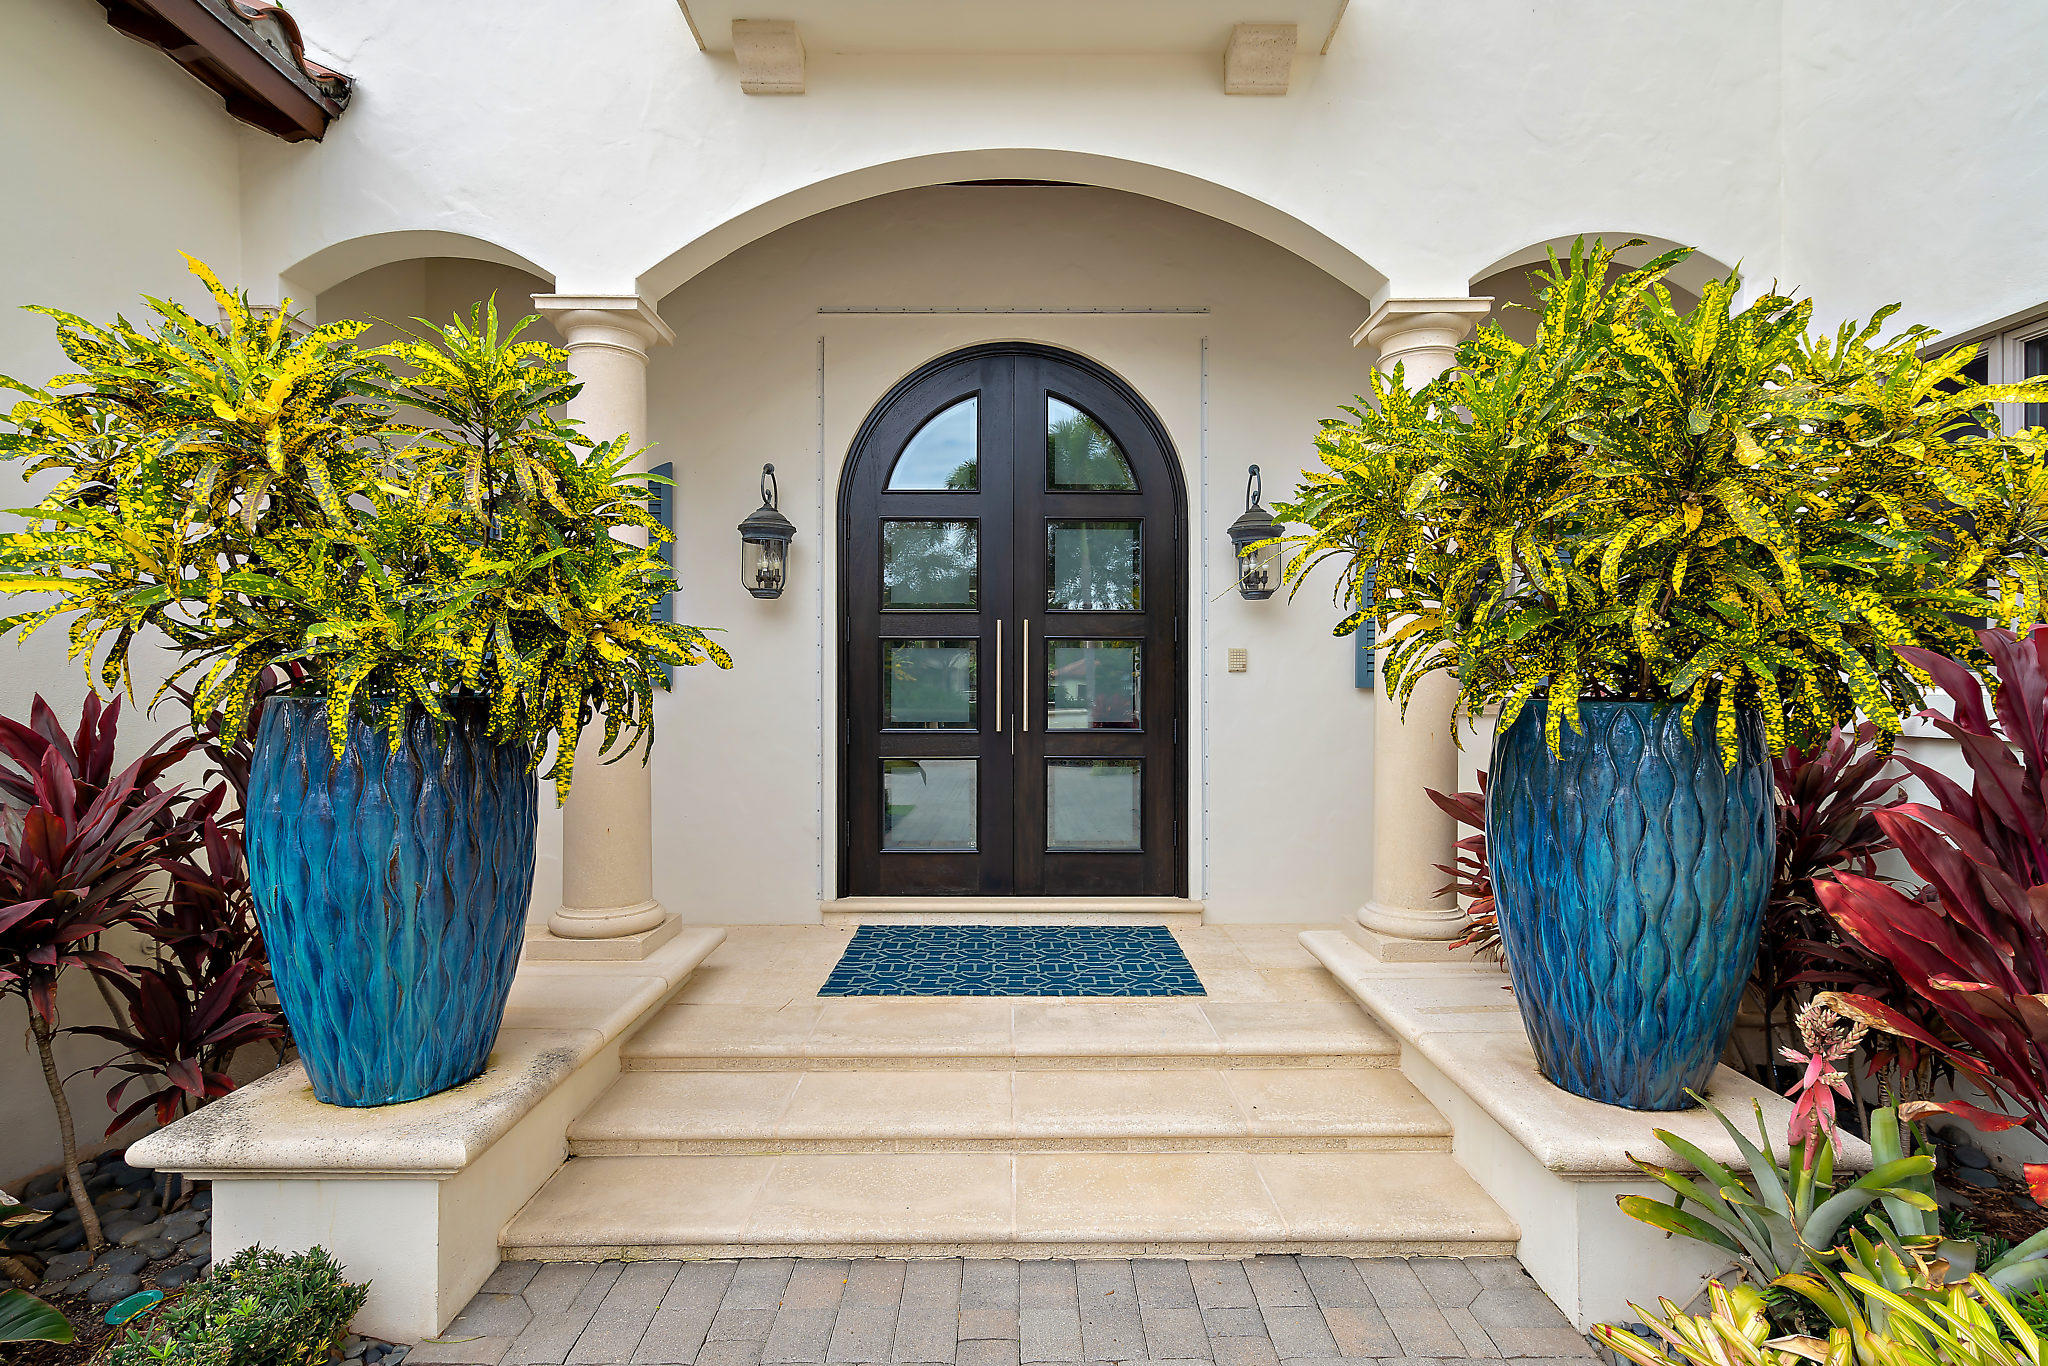 New Home for sale at 528 Bald Eagle Drive in Jupiter